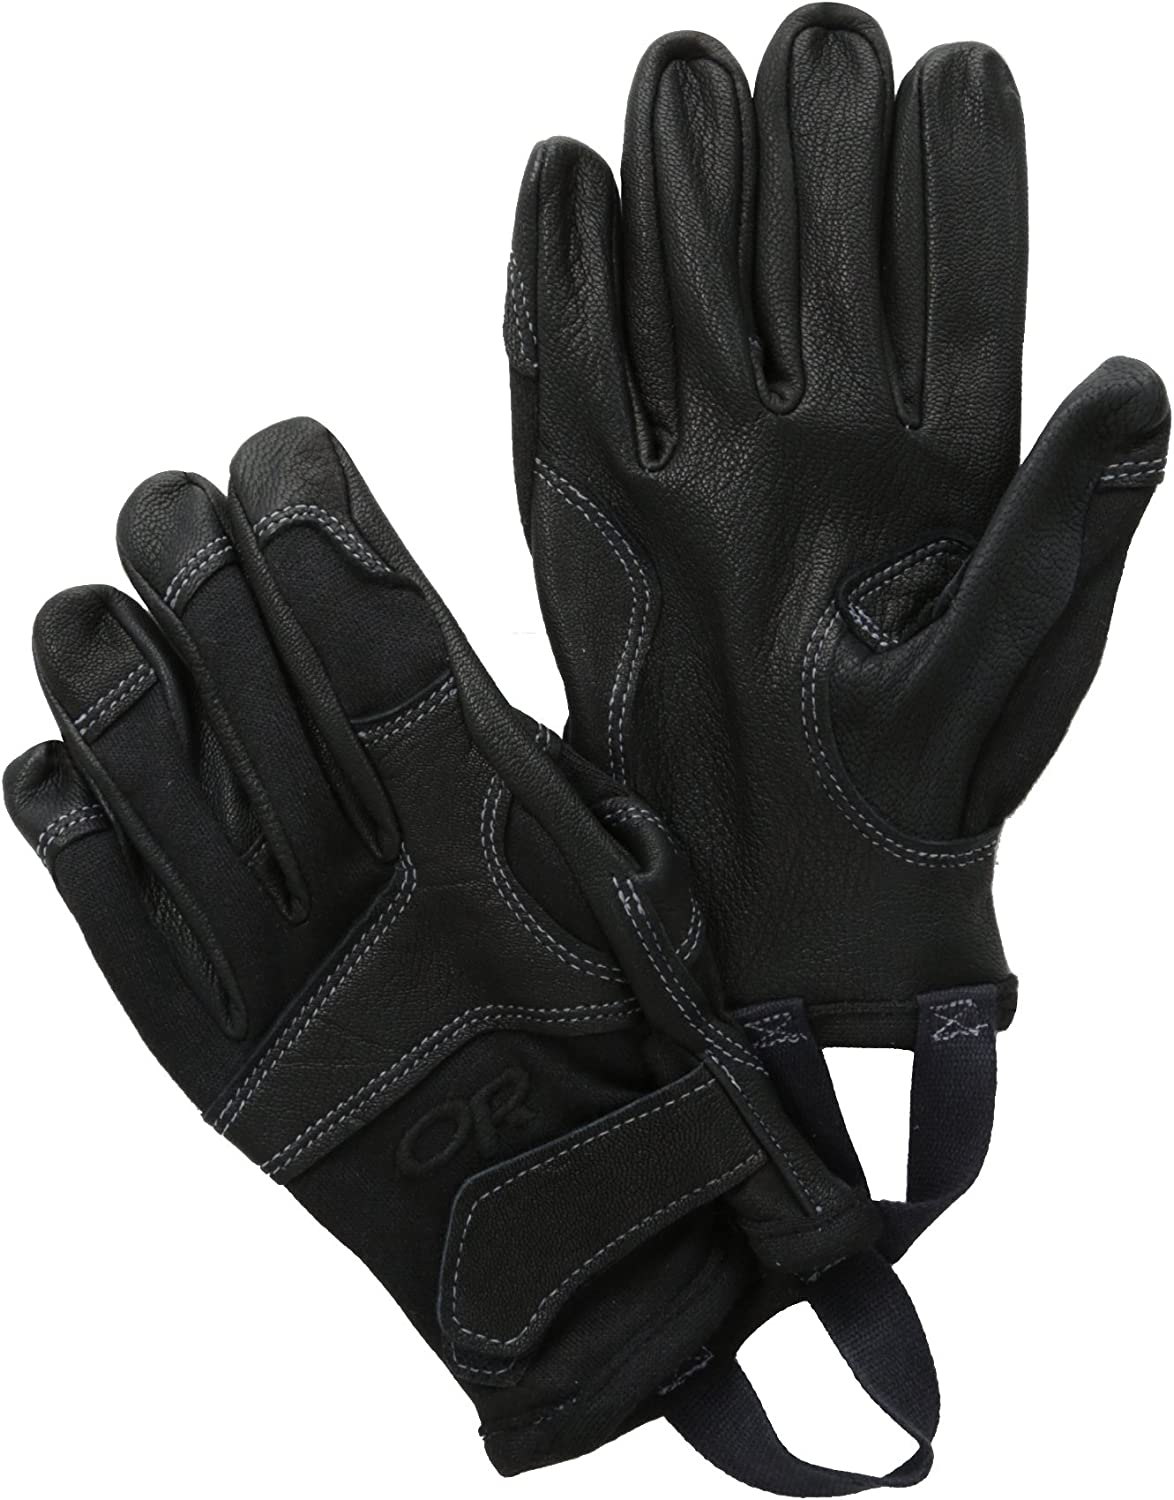 Outdoor Research Suppressor Gloves